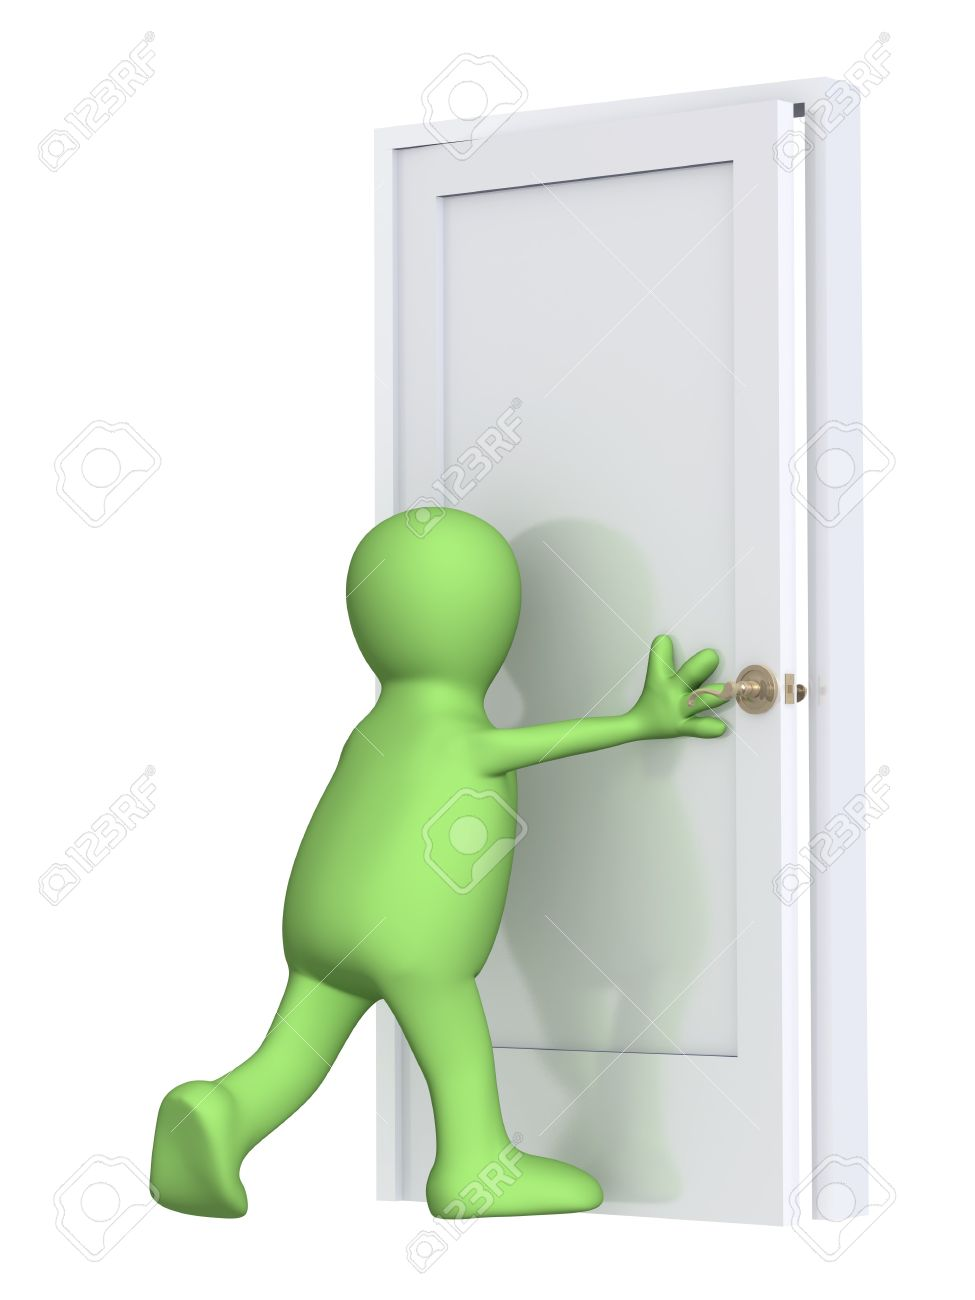 3d puppet closing a door. Over white Stock Photo - 4108109  sc 1 st  123RF Stock Photos & 3d Puppet Closing A Door. Over White Stock Photo Picture And ... pezcame.com